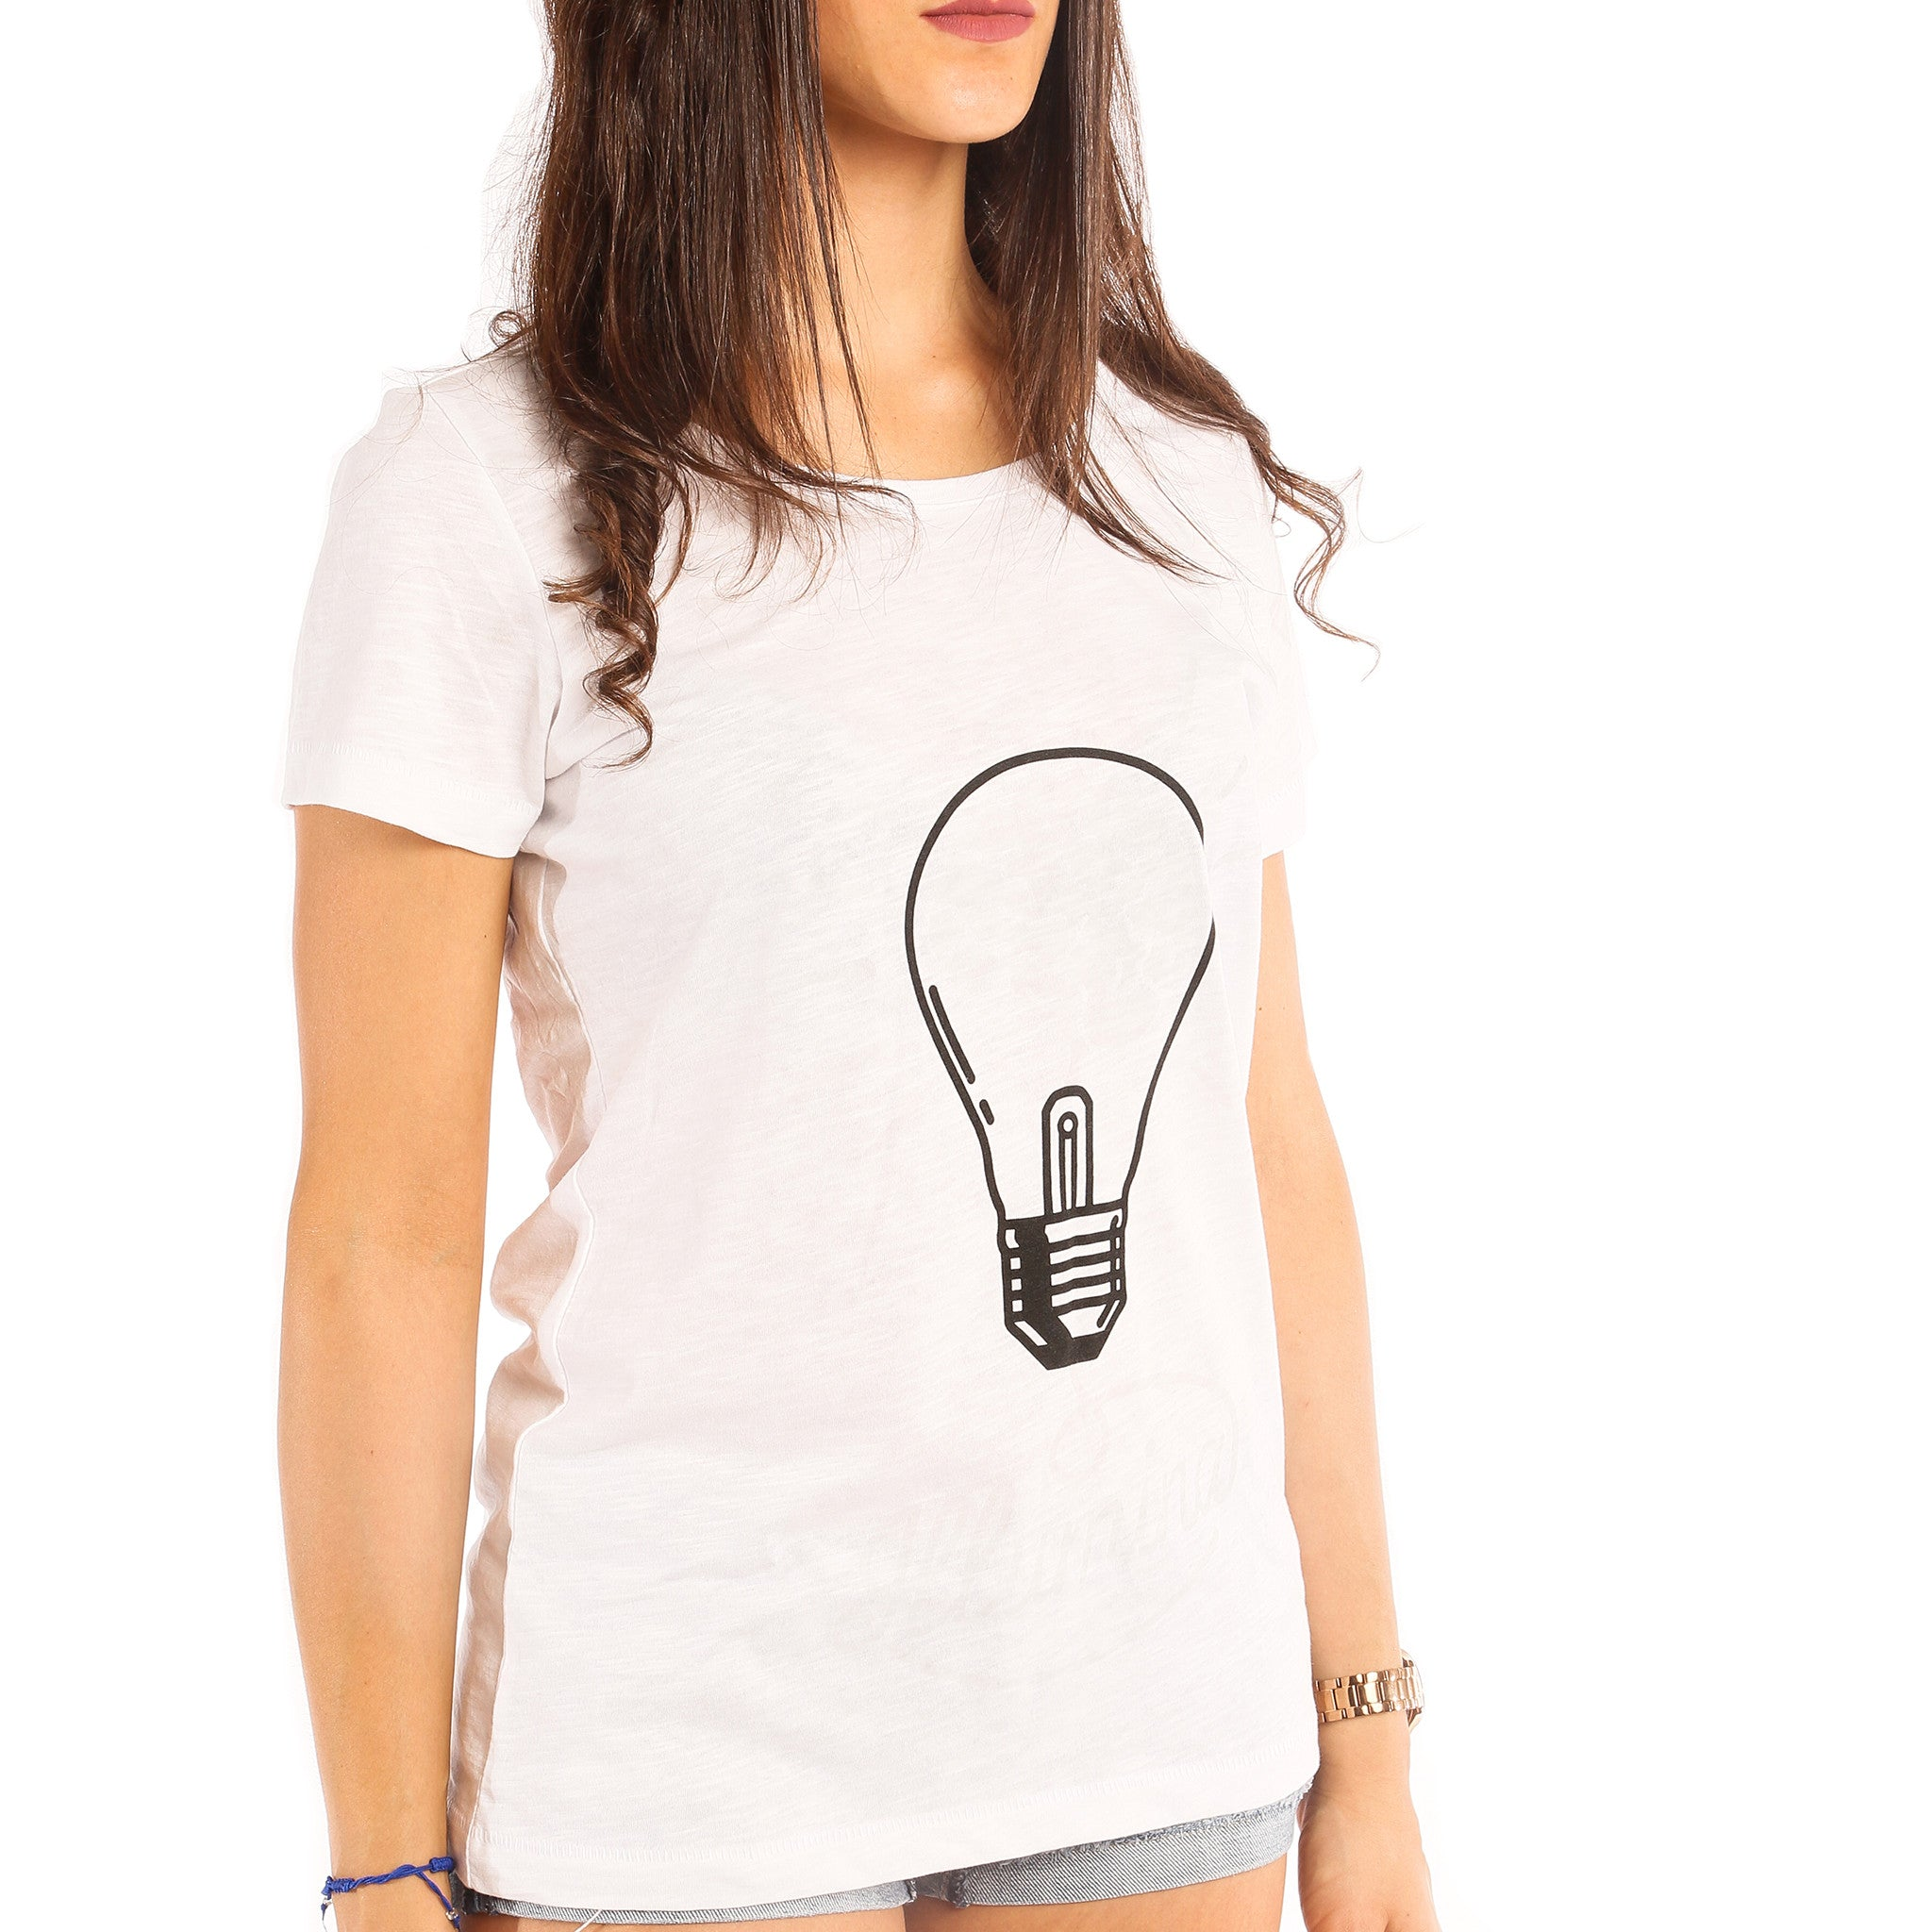 Illumina Luminescente - T-shirt Donna Promo - T-Shirt by Fol The Brand